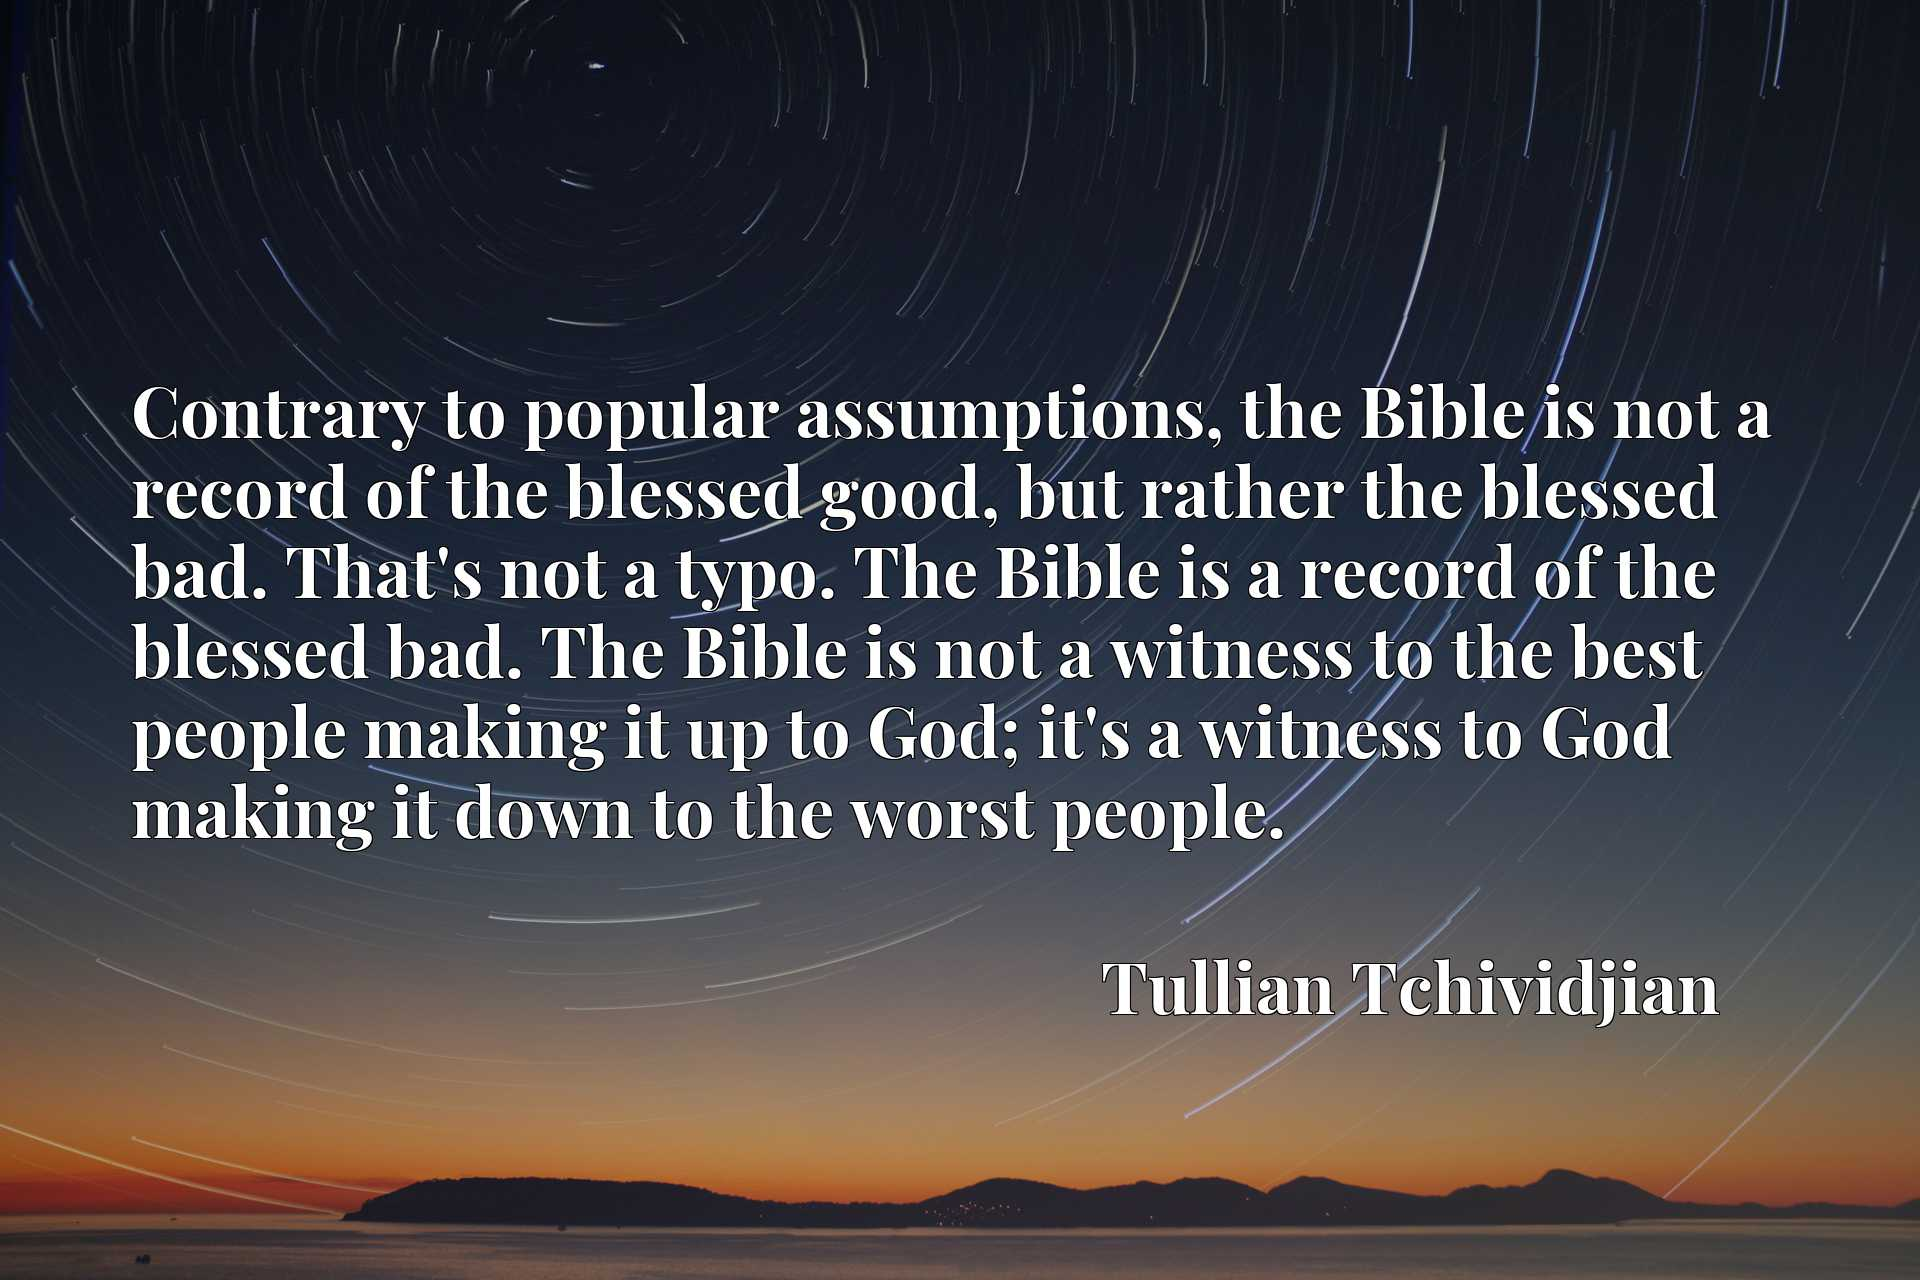 Contrary to popular assumptions, the Bible is not a record of the blessed good, but rather the blessed bad. That's not a typo. The Bible is a record of the blessed bad. The Bible is not a witness to the best people making it up to God; it's a witness to God making it down to the worst people.